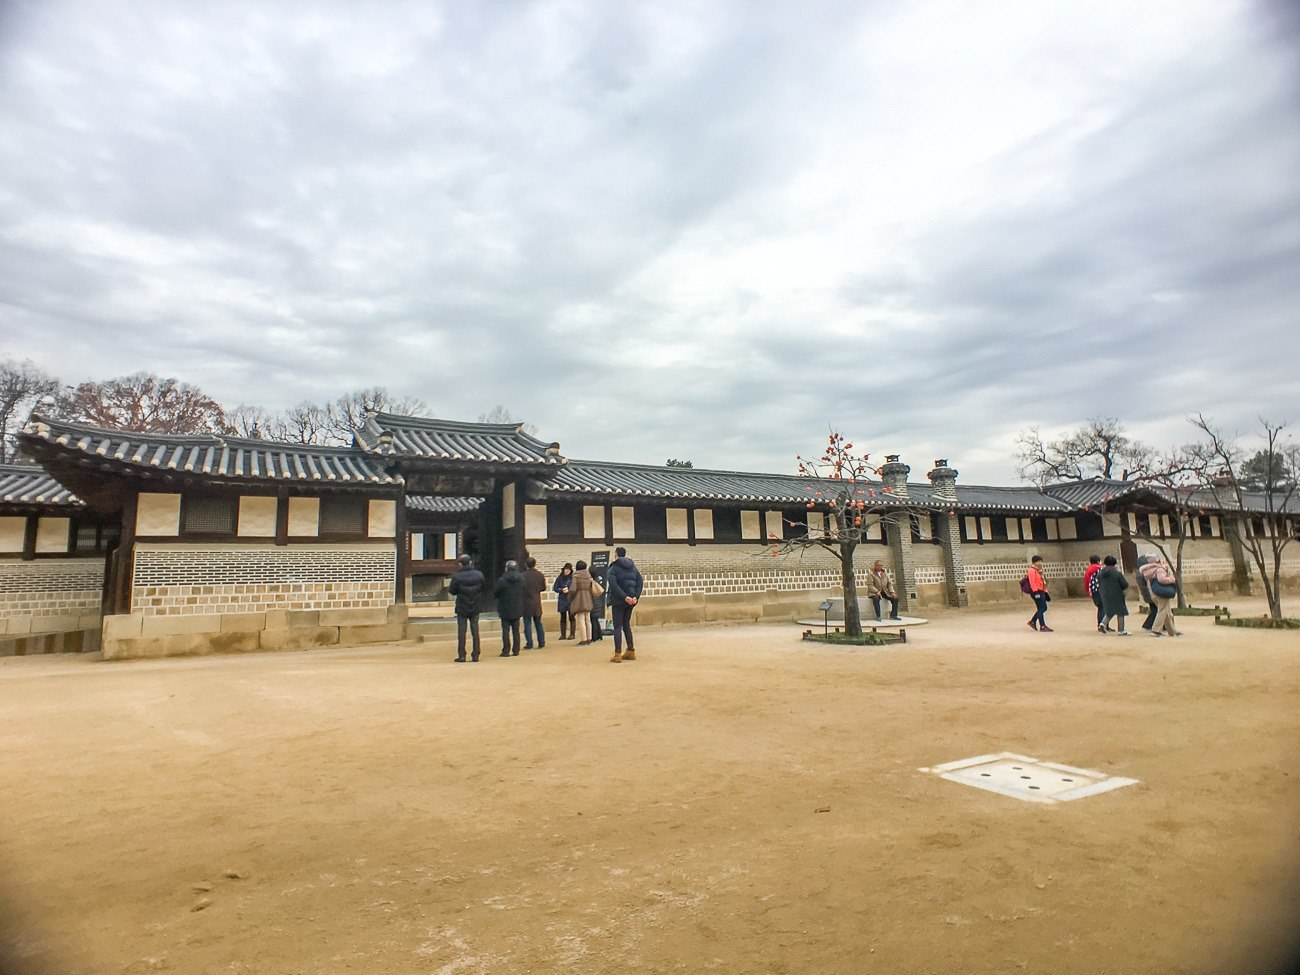 Moment iPhone lens review: Changdeokgung Palace in Seoul